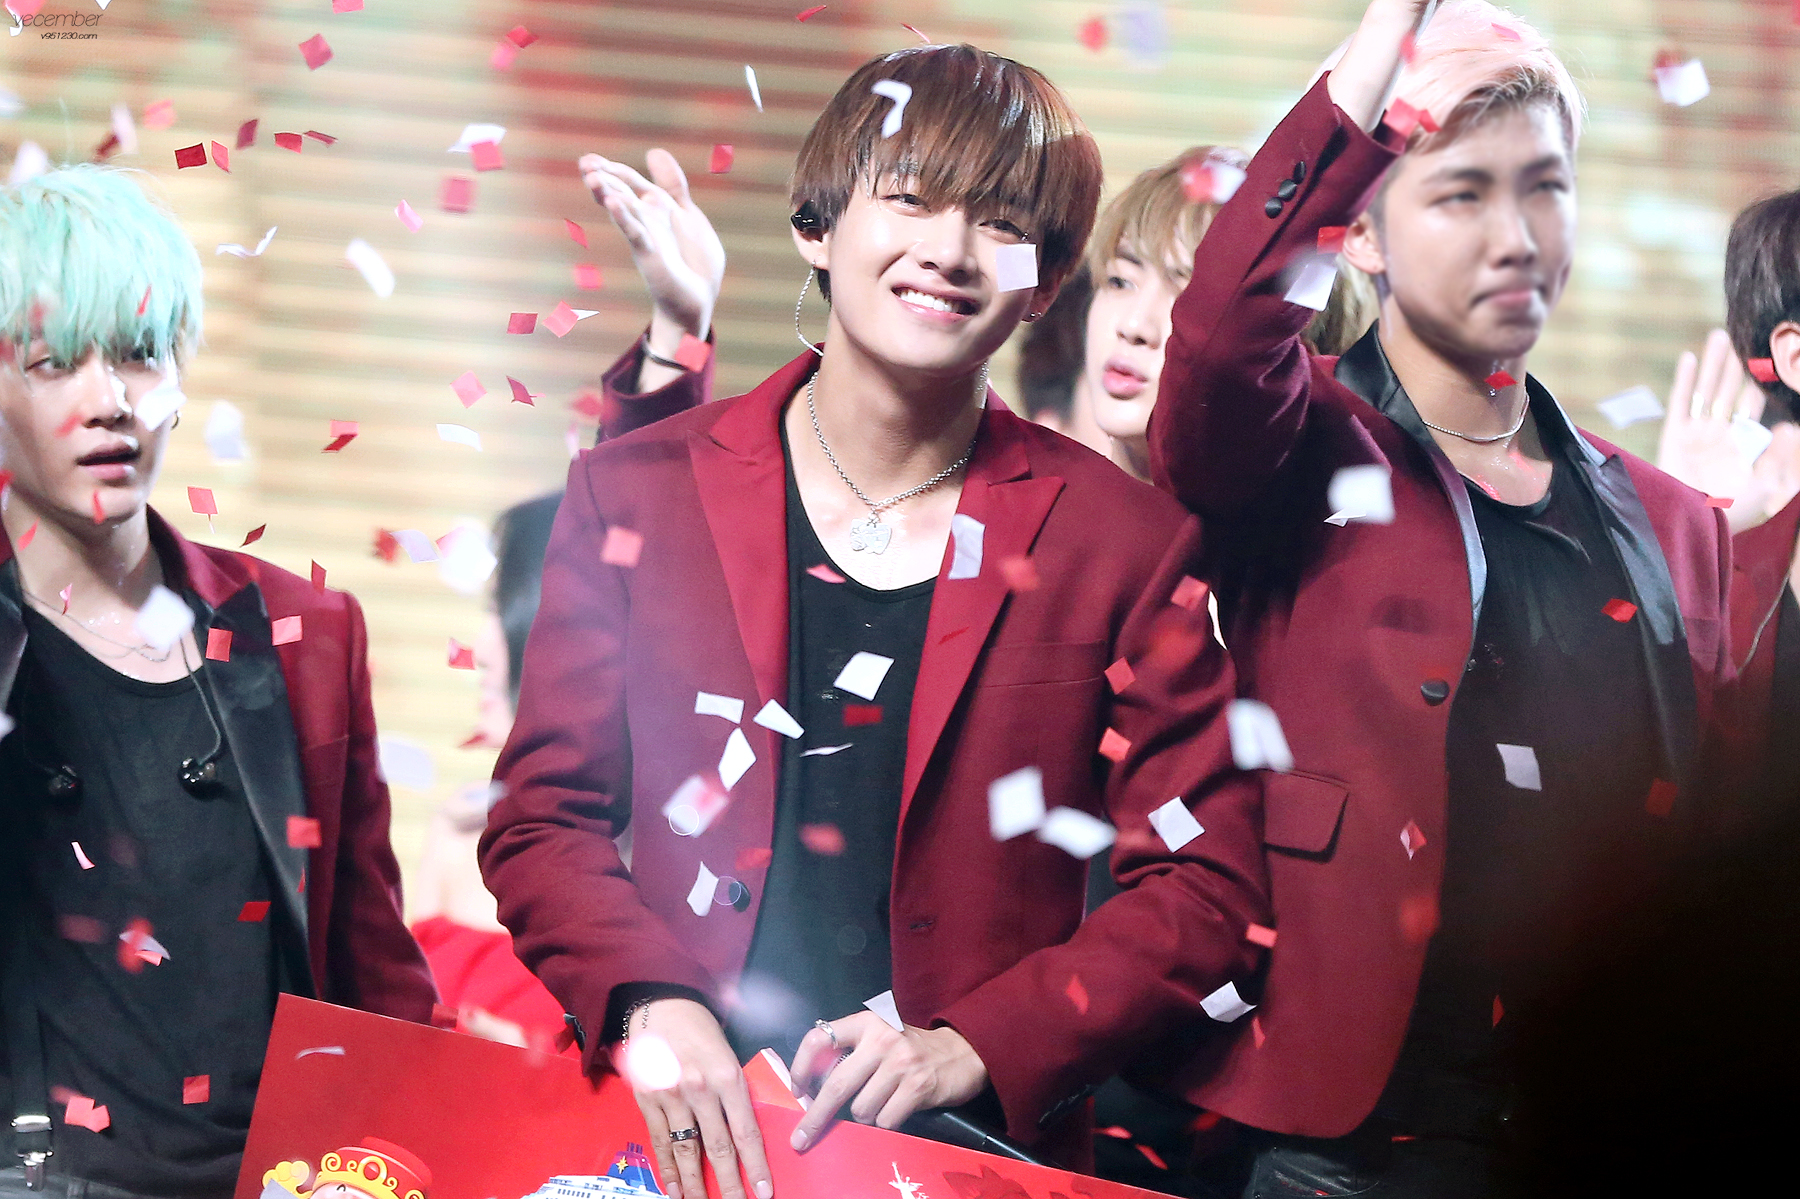 """Continue reading """"[Picture/Fansitesnap] BTS at TTV Red and White in Taipei- Taiwan [160109]"""" →"""